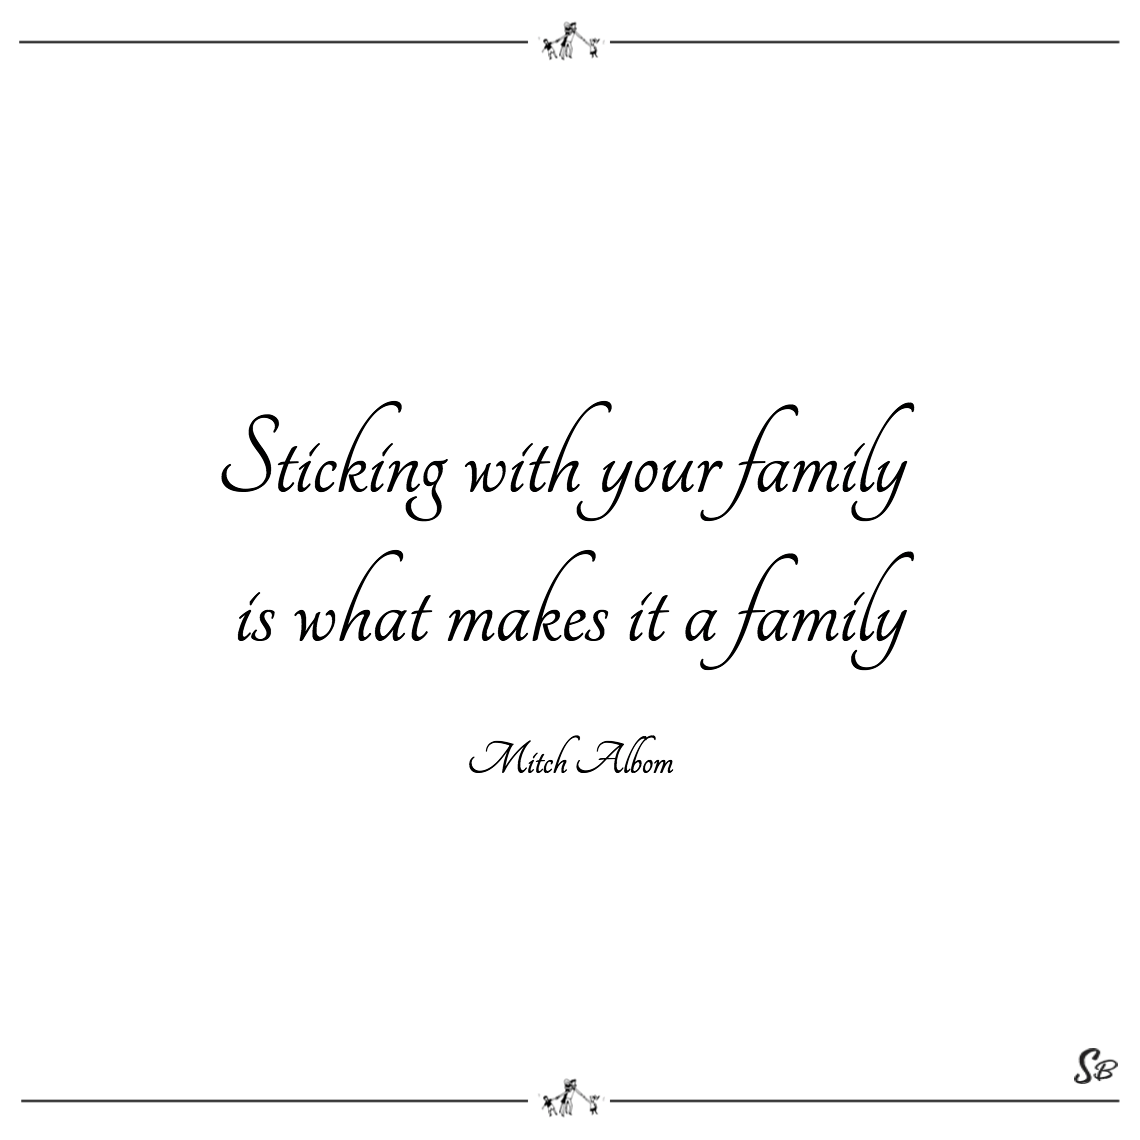 Sticking with your family is what makes it a family mitch albom